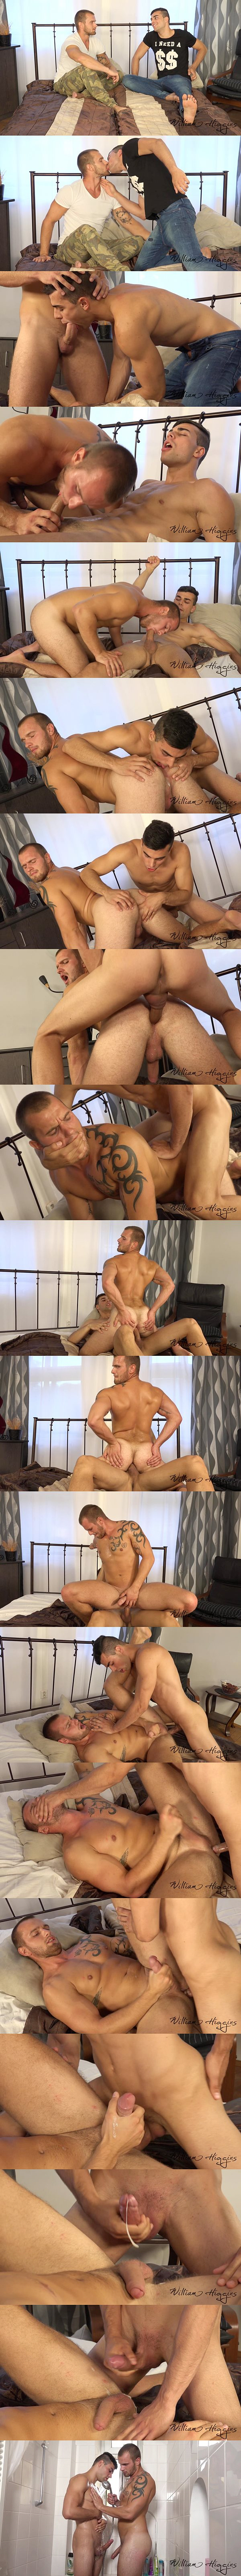 Petr Zuska barebacks Alex Stan's bubble ass until he fucks the cum out of Alex at Williamhiggins 02